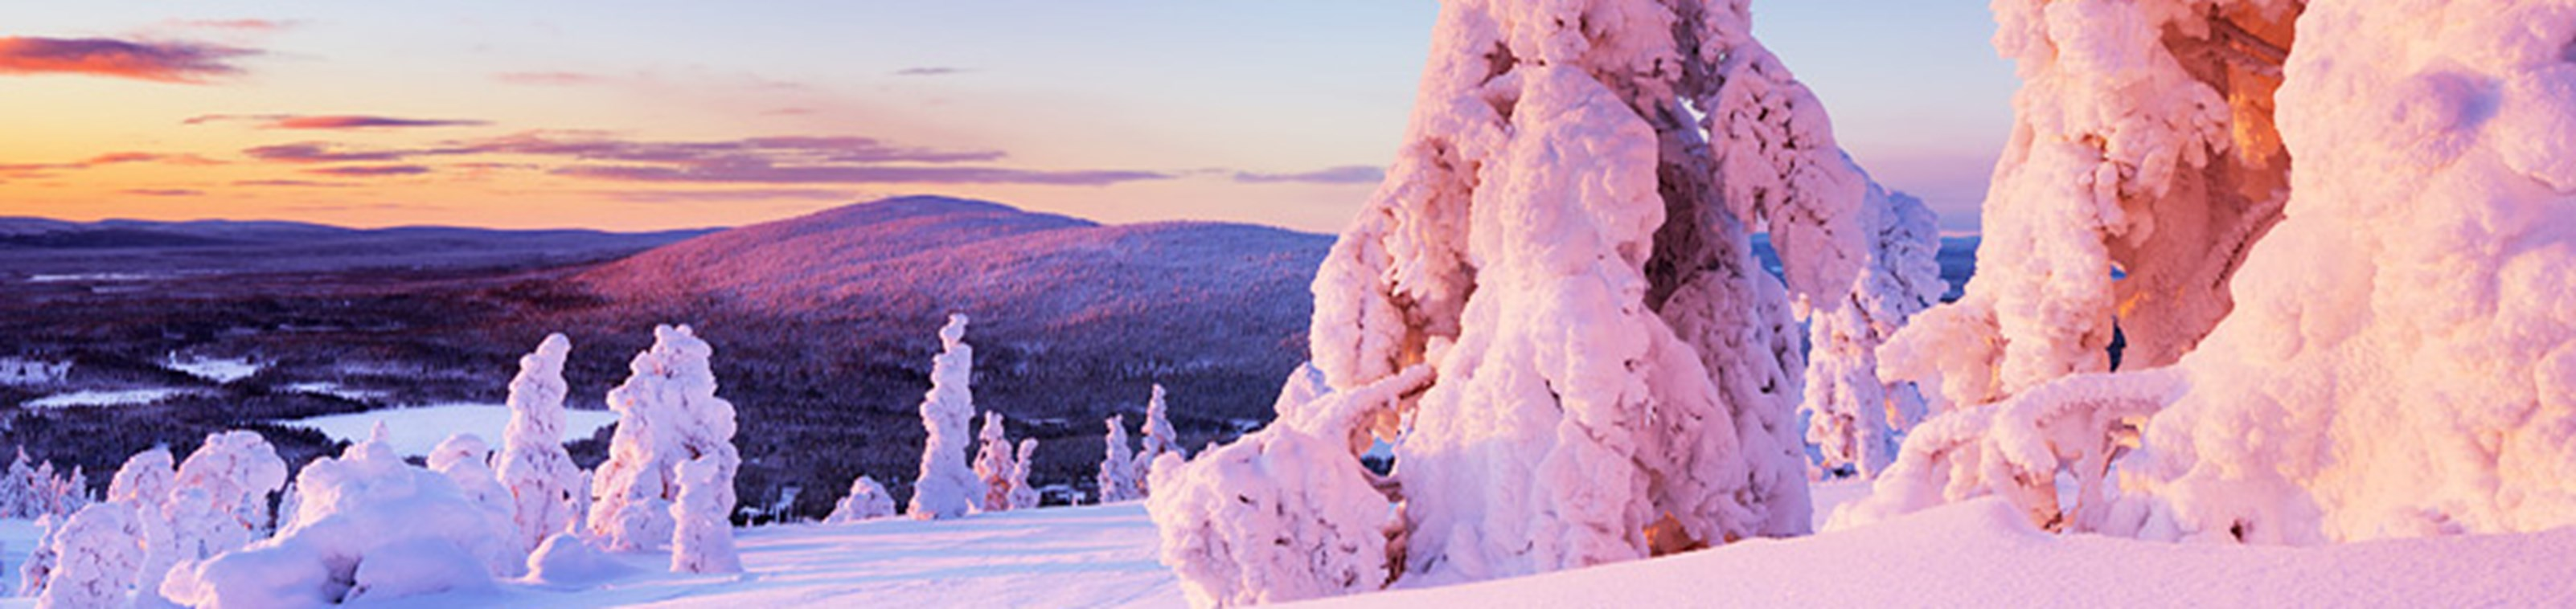 Uniek winterlandschap in Lapland